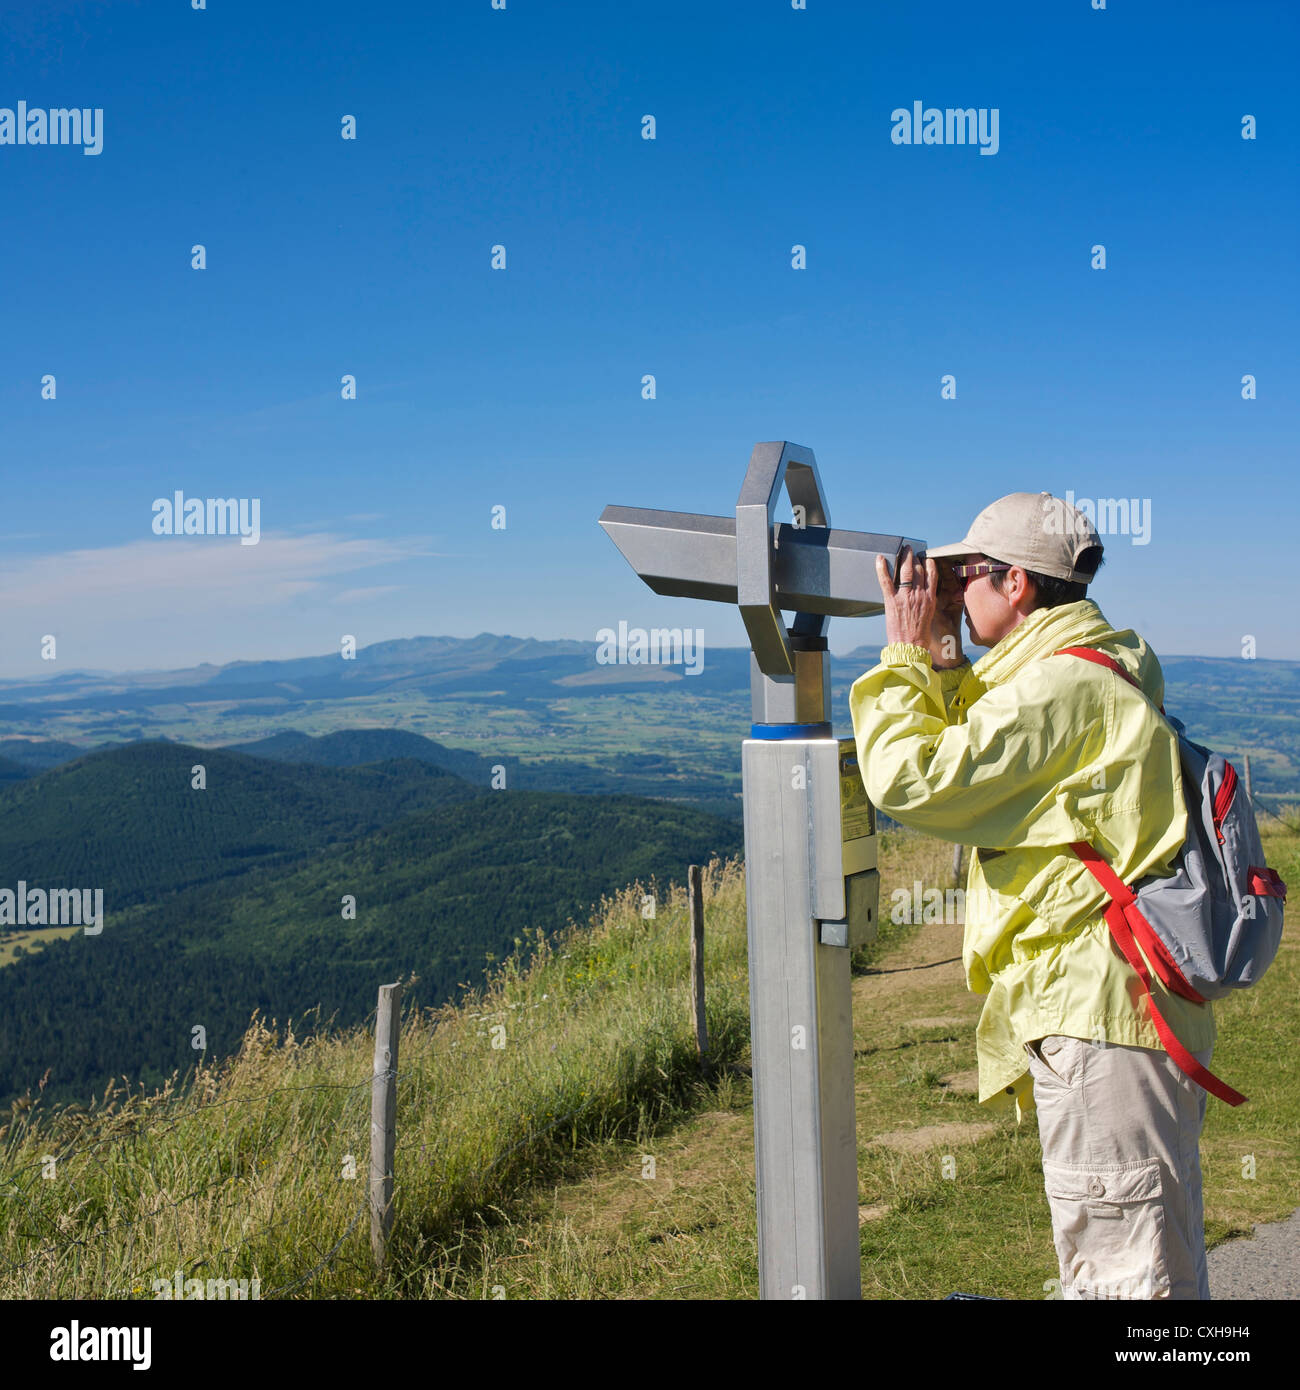 Hiker looking through a binocular a mountain landscape. Regional Park of Auvergne volcanoes. France. - Stock Image